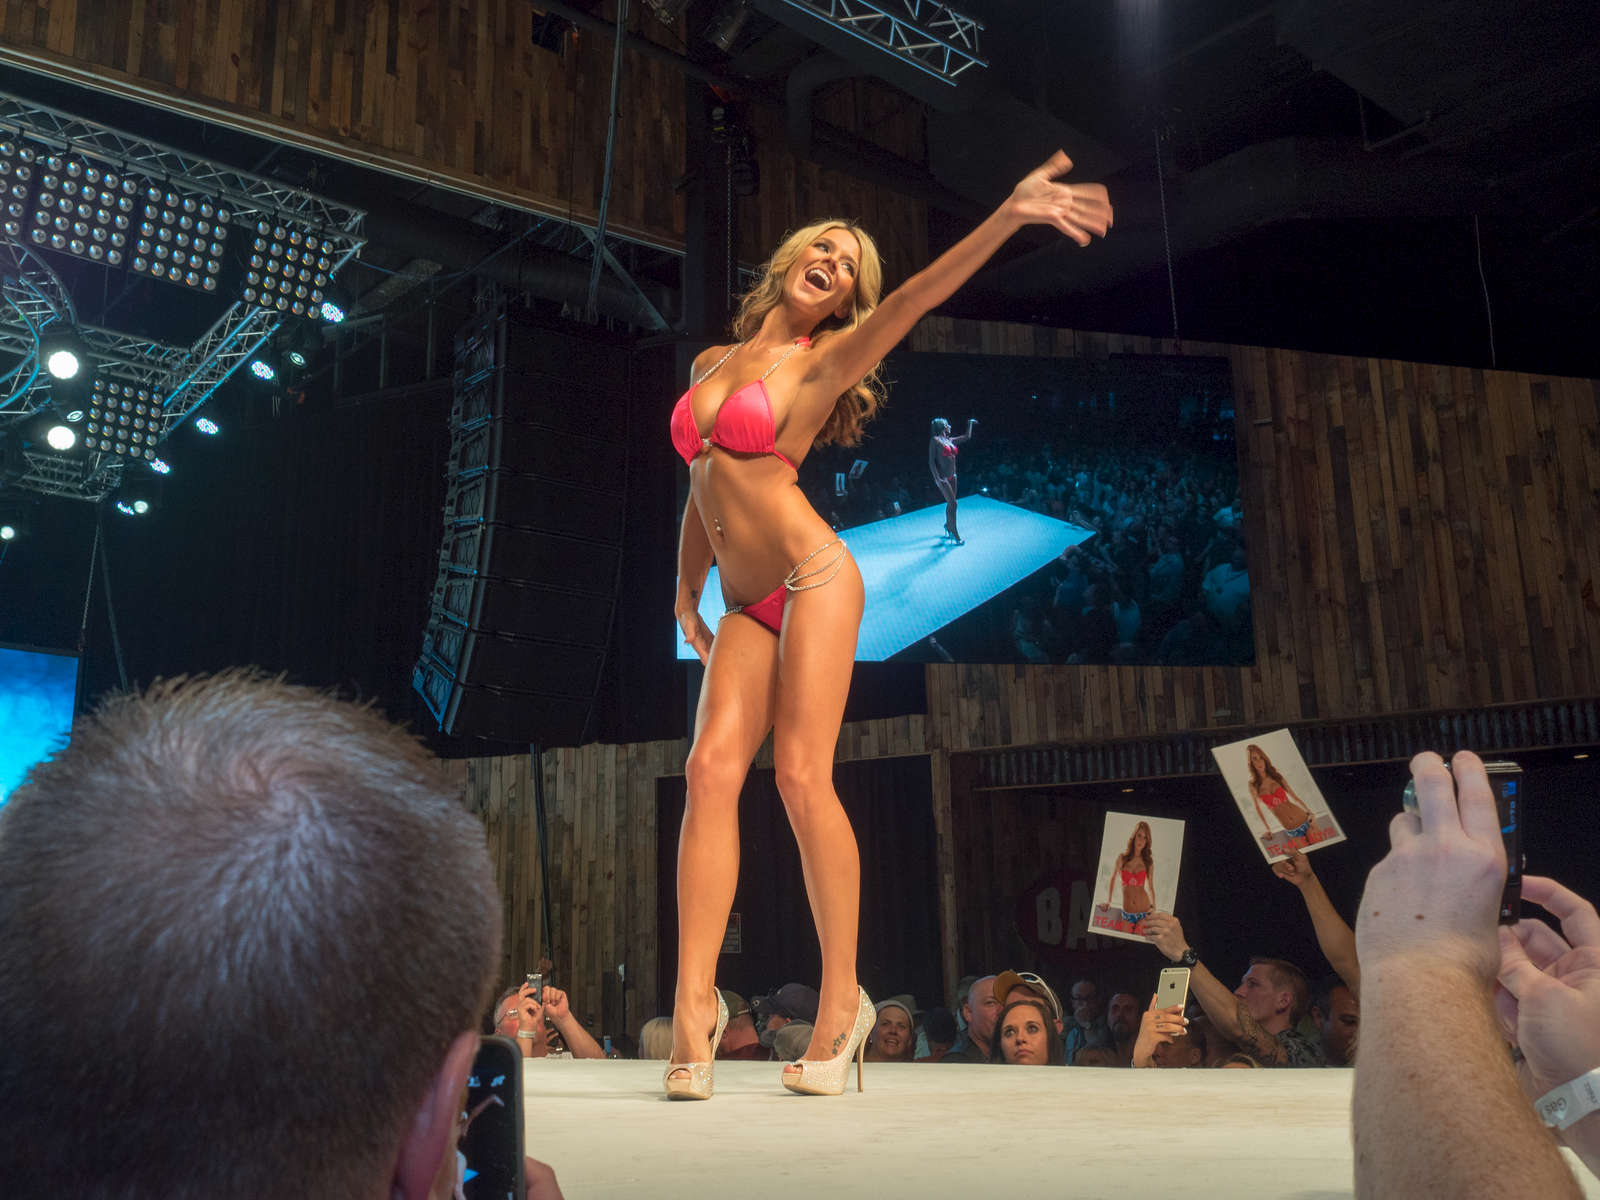 A finalist on stage at the Twin Peaks 2015 National Bikini Contest where around 68 girls from the USA competed for the crown for Miss Twin Peaks 2015, hosted at Gas Monkey Live, Dallas on the 24th June.Twin Peaks is a chain of sports bars and restaurants (colloquially referred to as breastaurants) based in Dallas, Texas. The chain is known for having its waitresses dress in revealing uniforms that consist of cleavage- and midriff-revealing red plaid (or sometimes black bikini) tops, as well as khaki short shorts. At other times, waitresses wear revealing seasonal or themed outfits. Restaurants are decorated in the theme of a wilderness lodge and serve a mix of American, Southwest and Southern cuisines as well as alcohol. The chain's slogan is {quote}Eats. Drinks. Scenic Views.{quote}Dallas is a major city in Texas and is the largest urban center of the fourth most populous metropolitan area in the United States. The city ranks ninth in the U.S. and third in Texas after Houston and San Antonio. The city's prominence arose from its historical importance as a center for the oil and cotton industries, and its position along numerous railroad lines.For two weeks in the summer of 2015, photographer Peter Dench visited Dallas to document the metroplex in his epic reportage, DENCH DOES DALLAS.Photographed using an Olympus E-M5 Mark II©Peter Dench/Getty Images Reportage